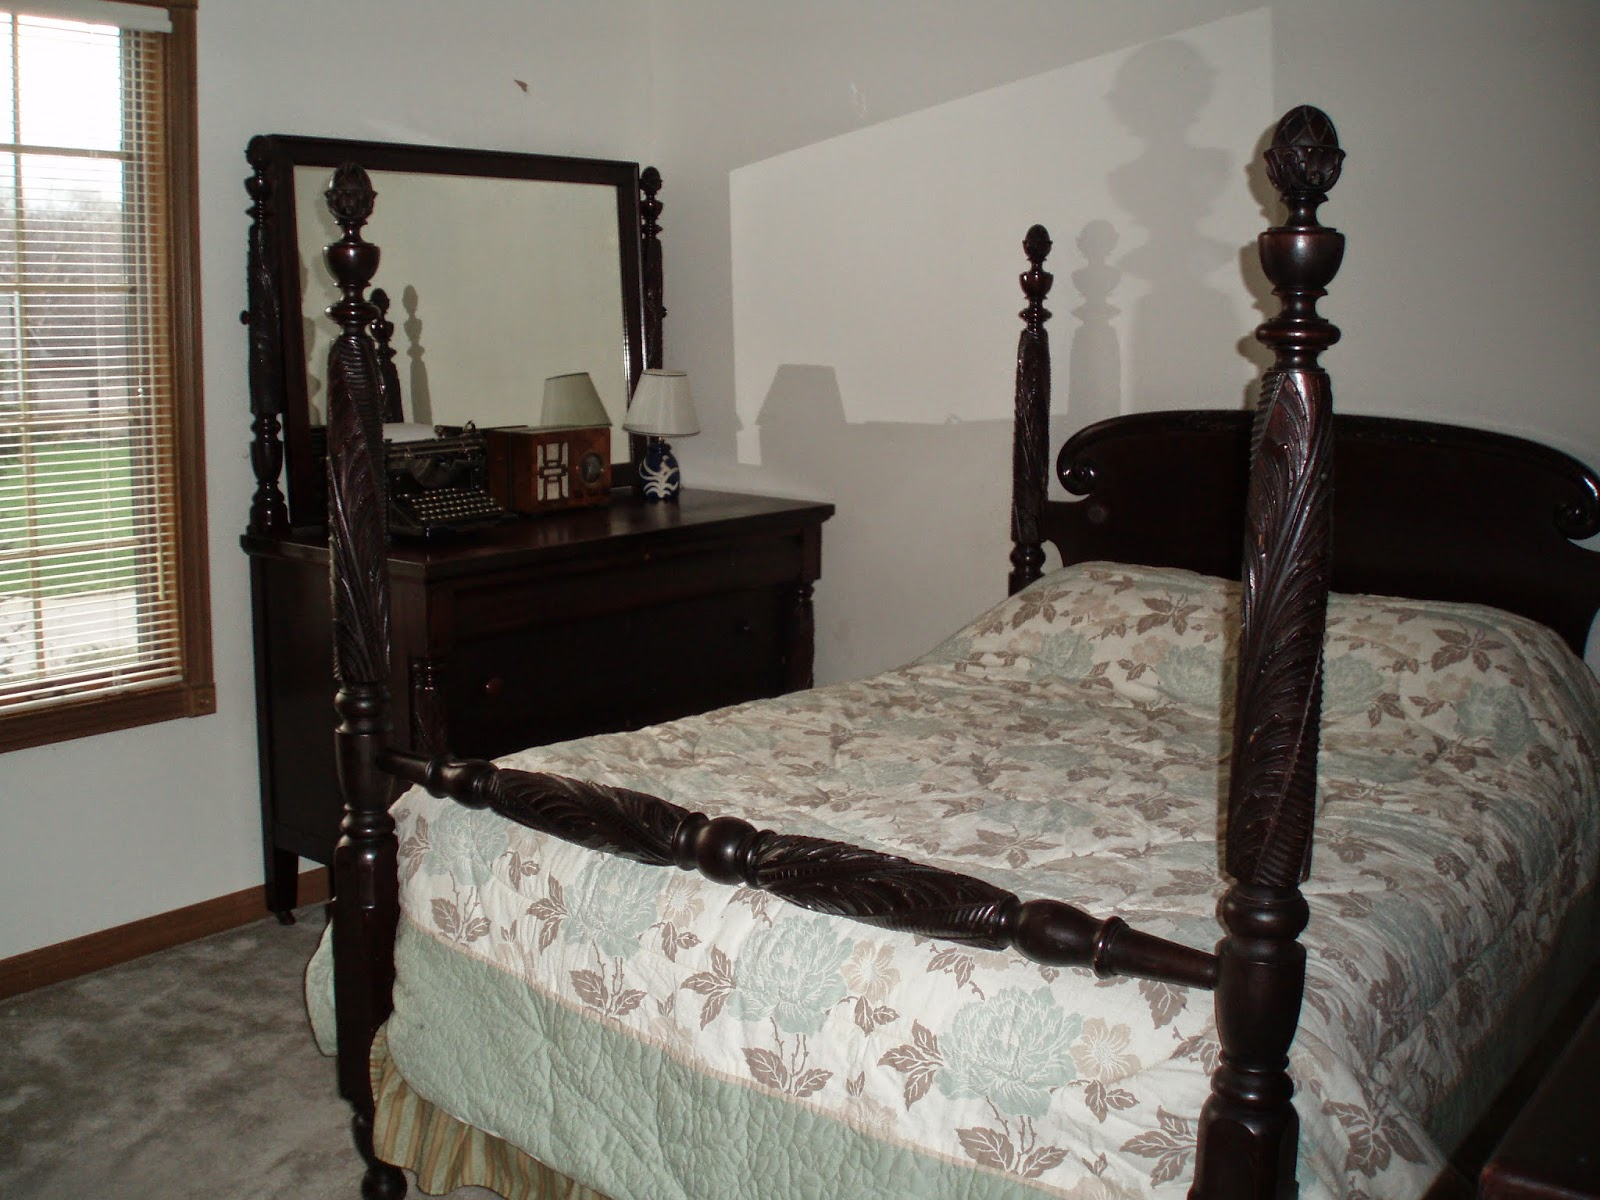 DIY: Converting Antique Bed To Queen Mattress